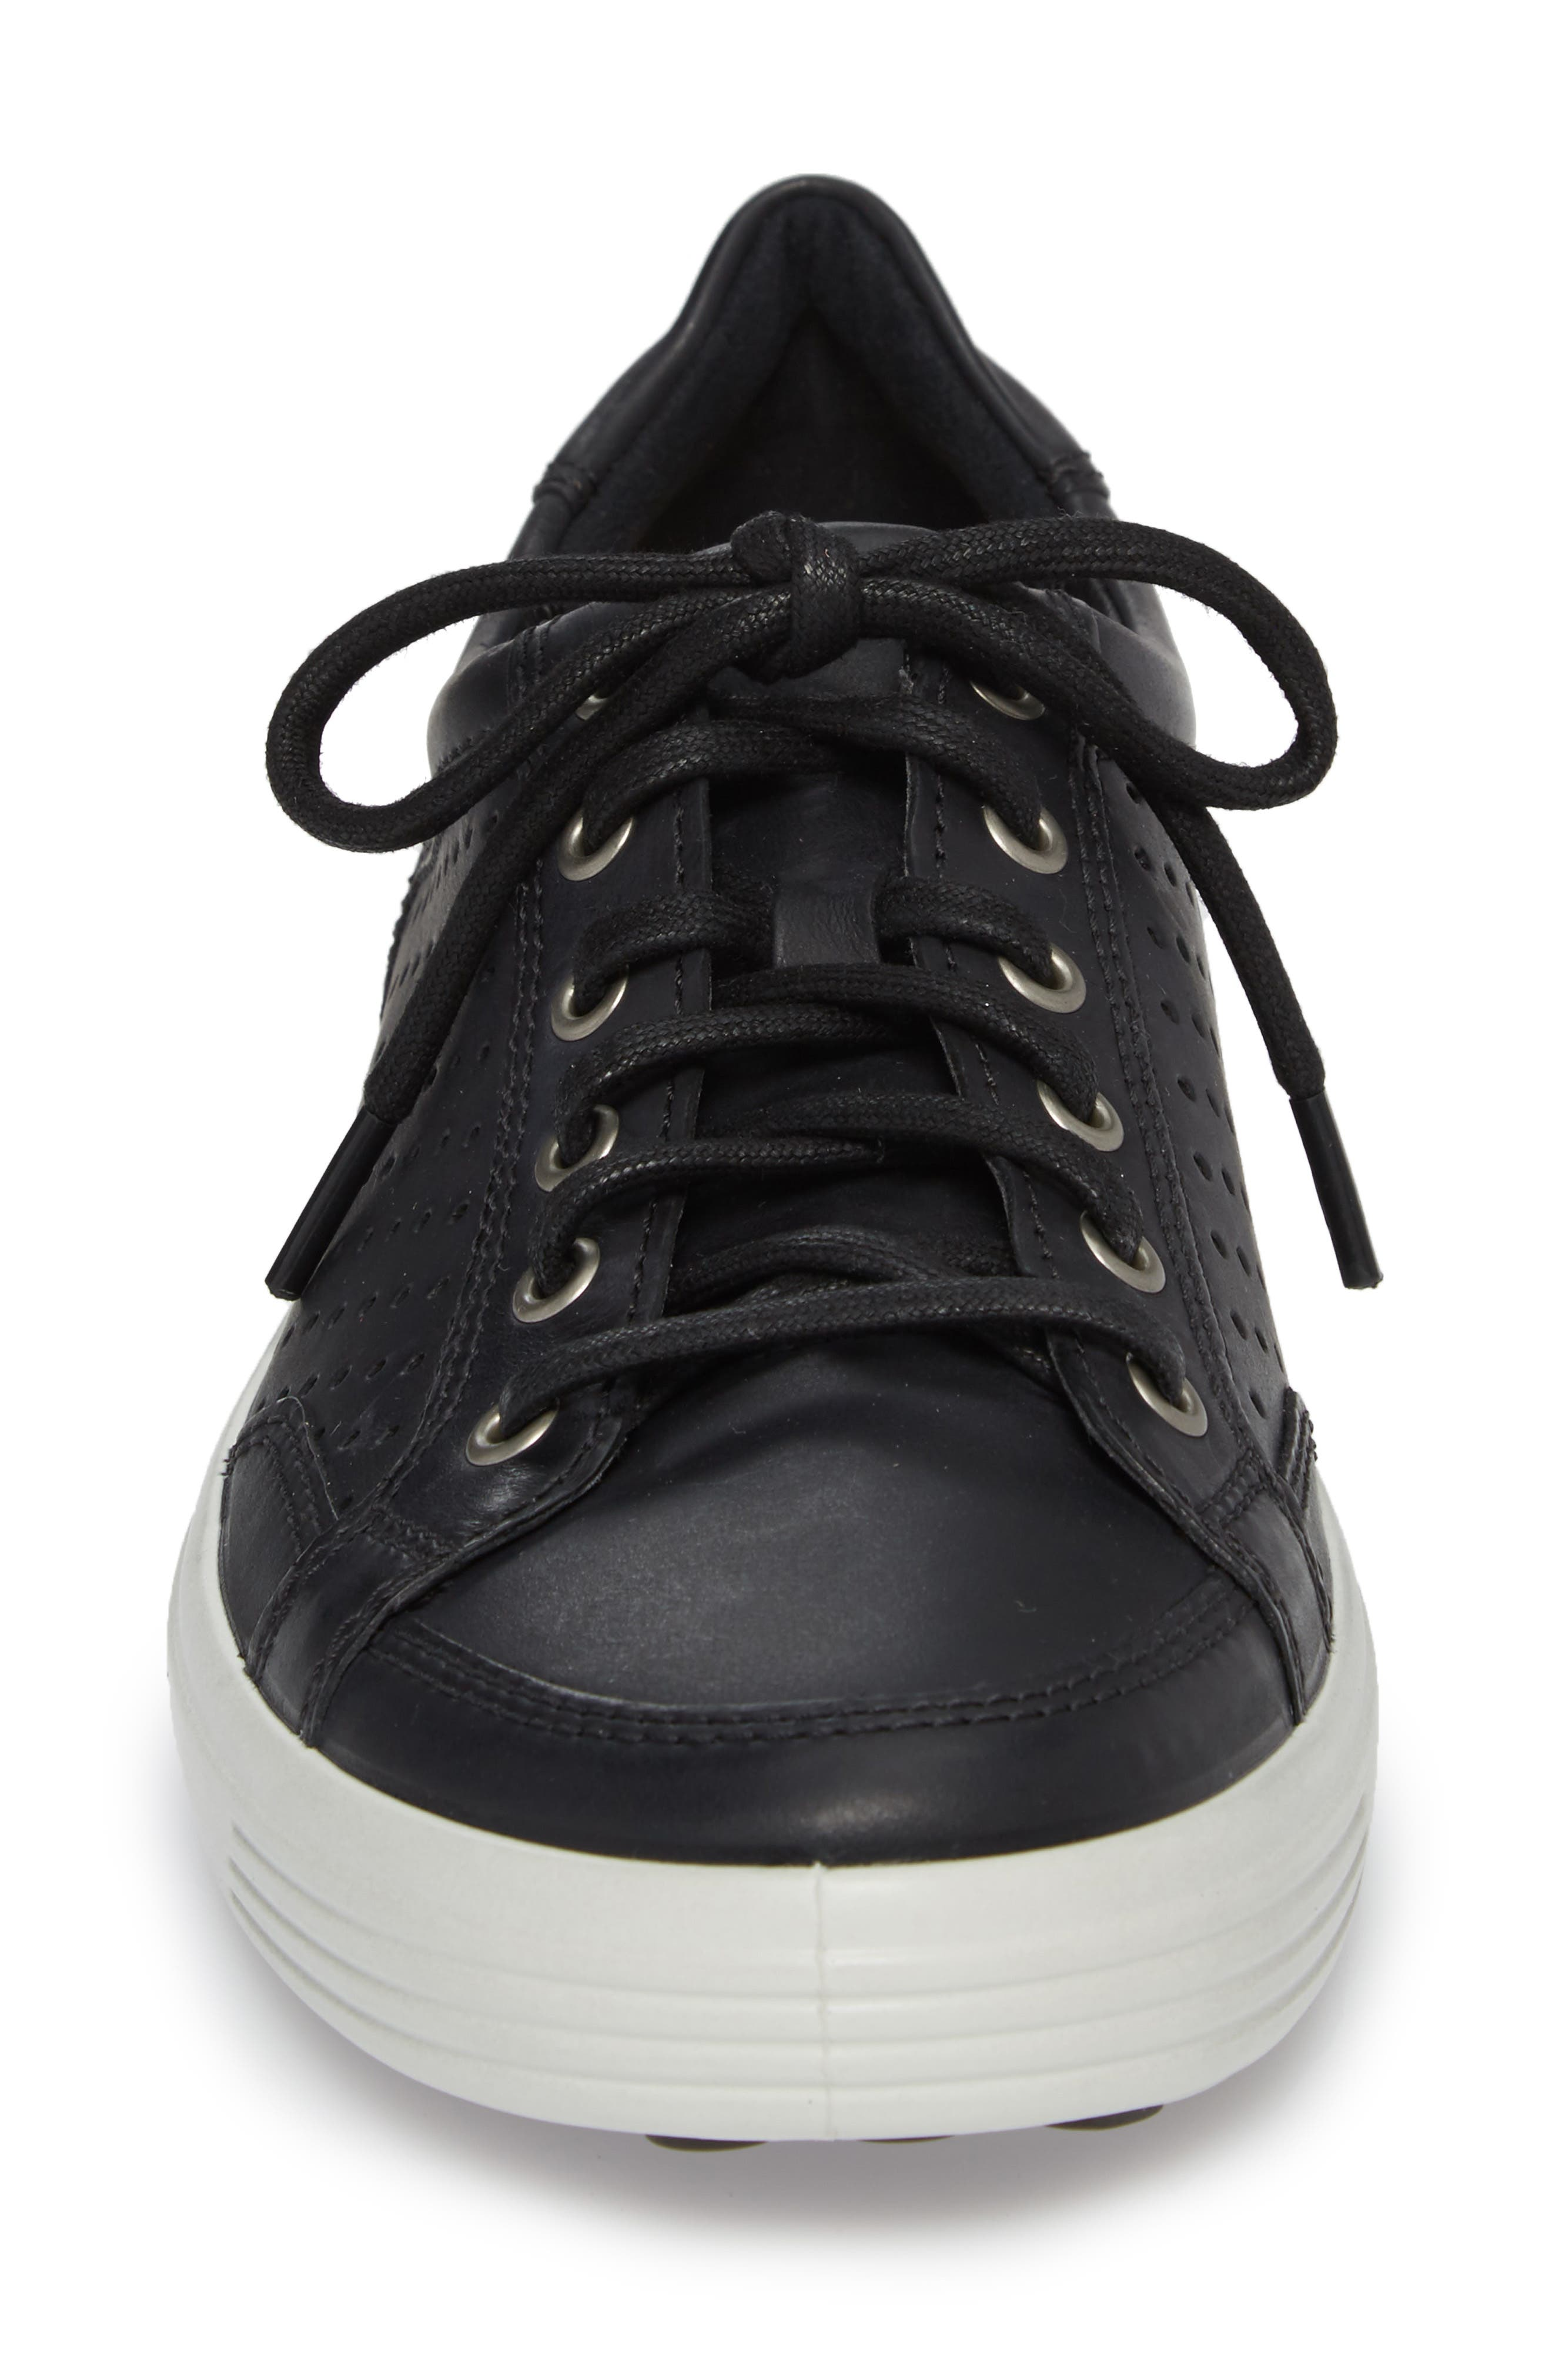 Soft 7 Retro Perforated Low Top Sneaker,                             Alternate thumbnail 4, color,                             Black Leather